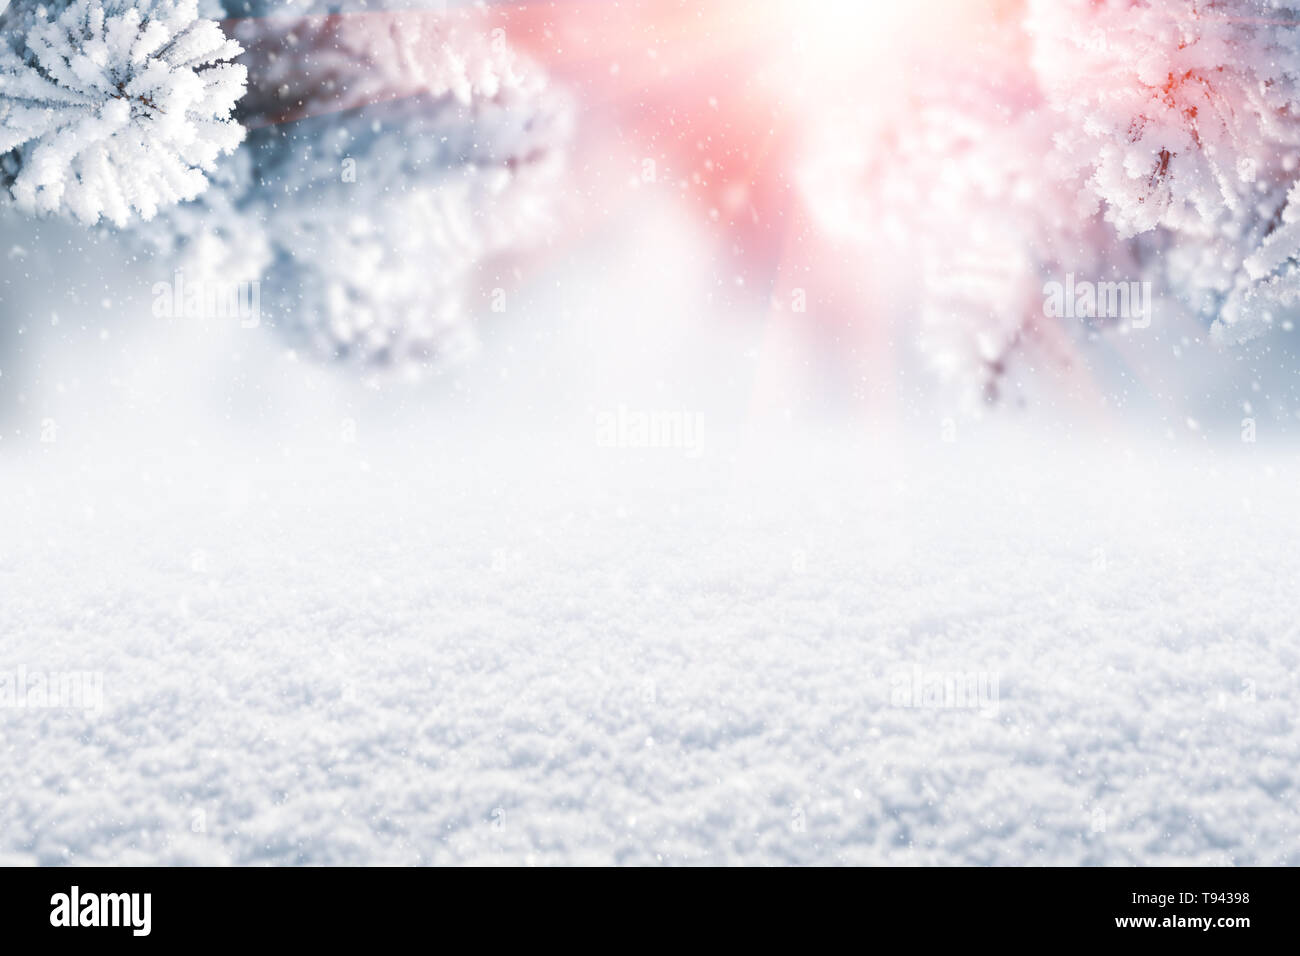 Winter Christmas scenic background. Snow landscape with spruce branches covered with snow and sunlight through the frozen tree branches. Sky and sunli - Stock Image